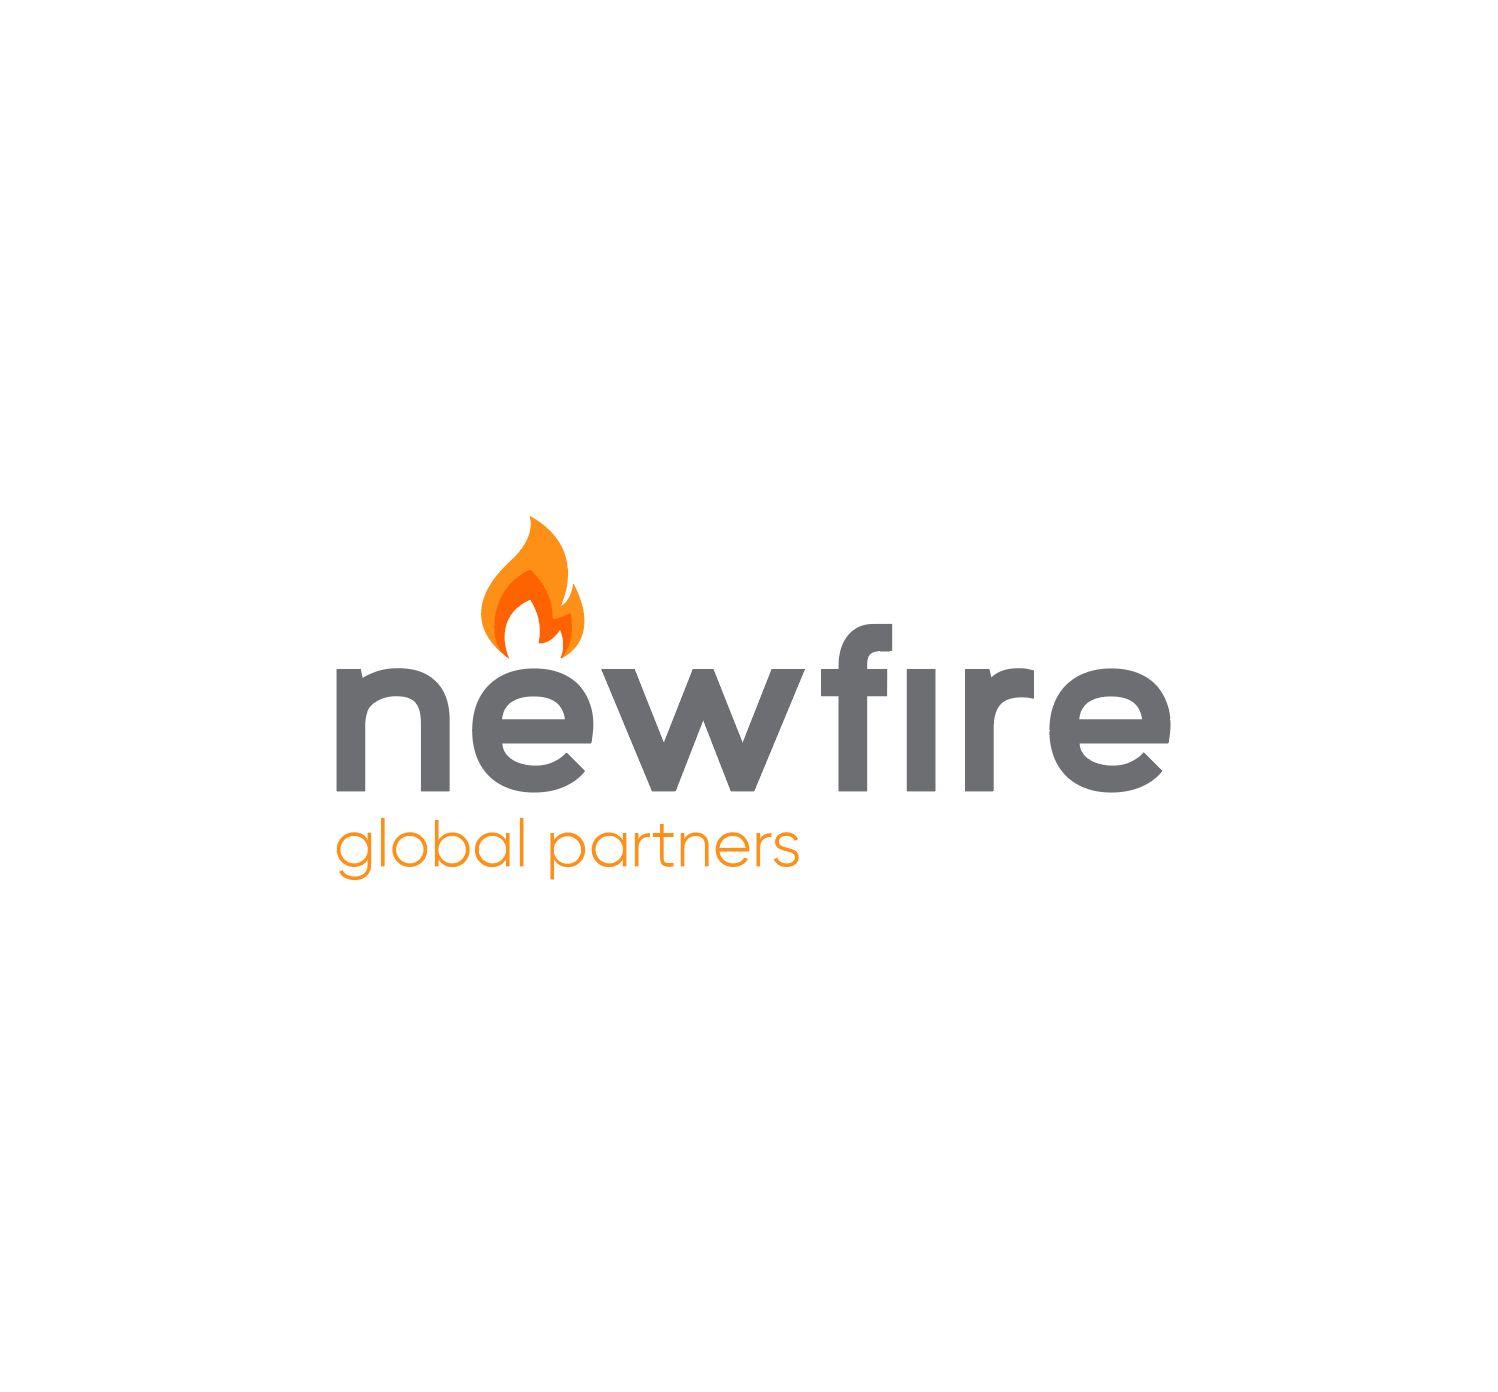 Newfire Global Partners Hacker Noon profile picture